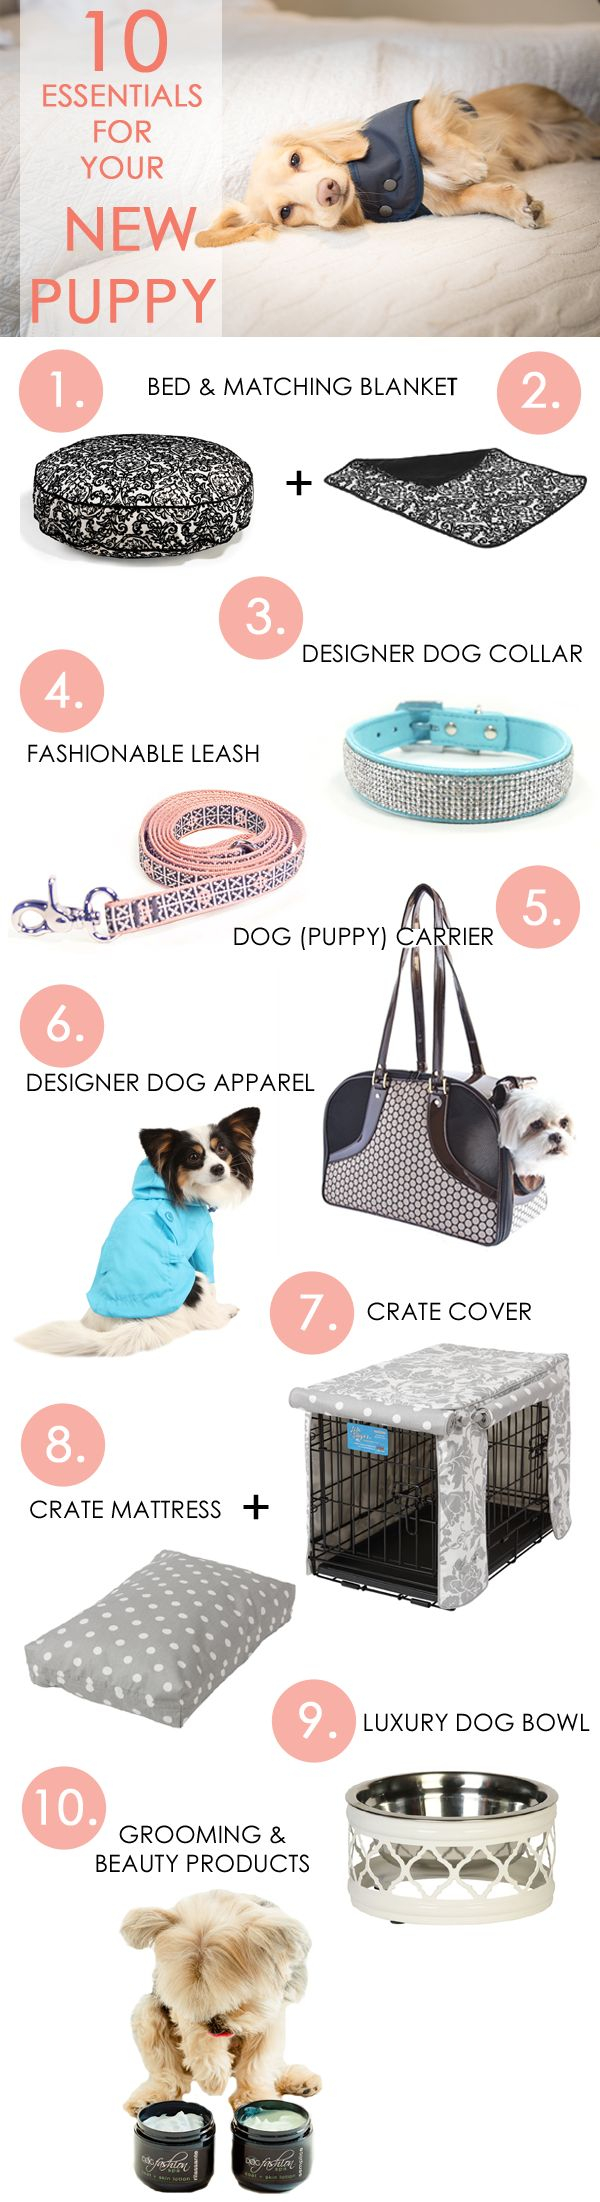 Welcome your new puppy with designer dog products from FelixChien.com! Spoil your new friend with everything from luxury dog beds to designer dog carriers!